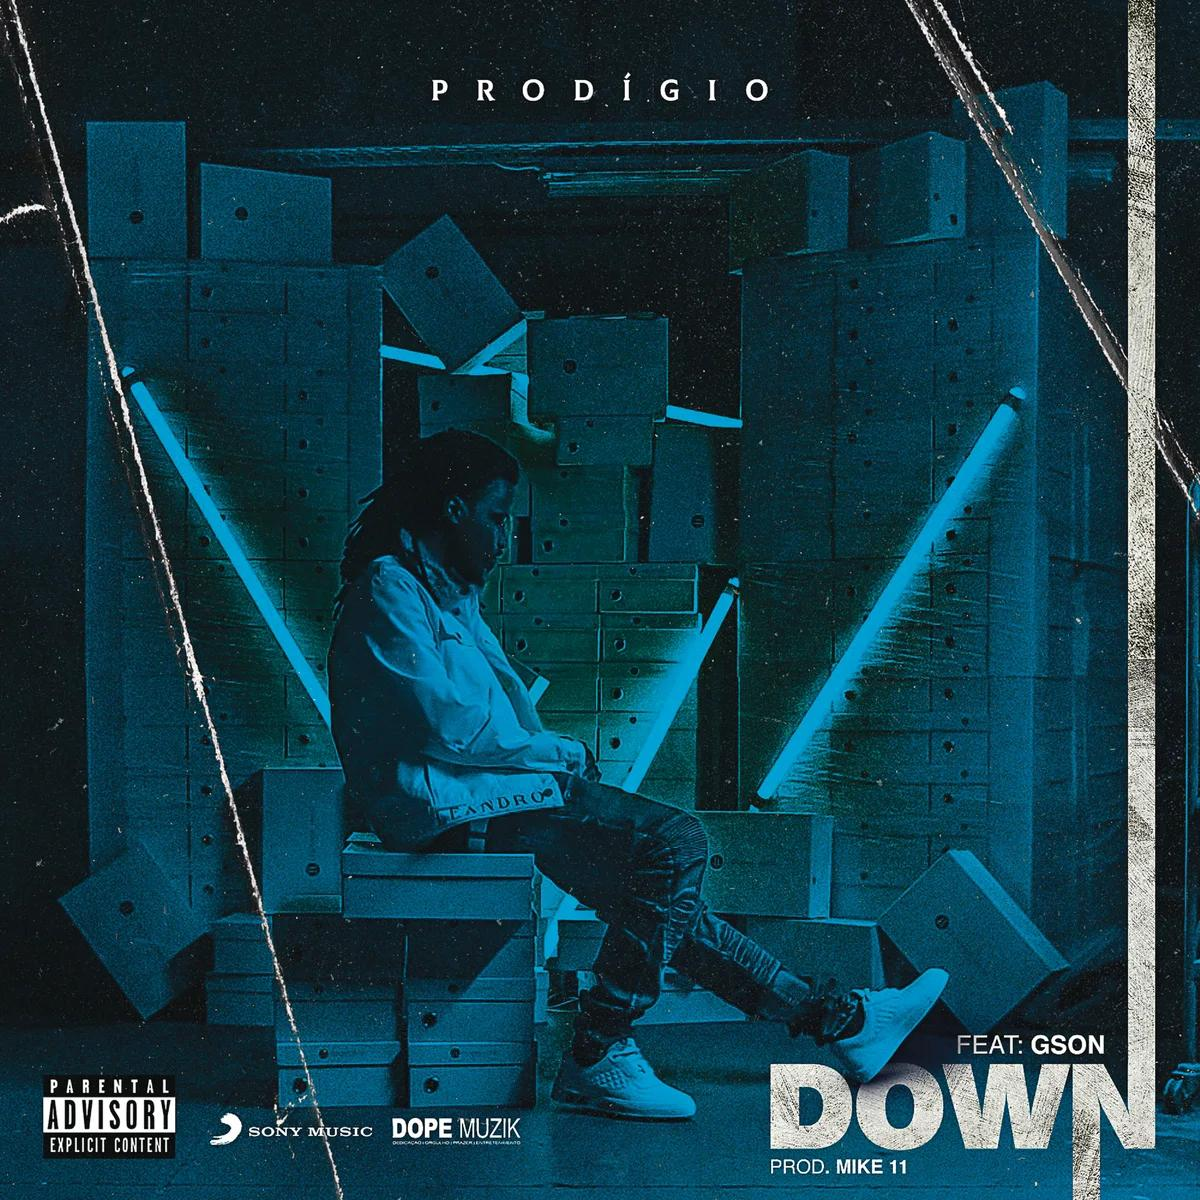 Prodigio - Down (feat. G. Son) 2019